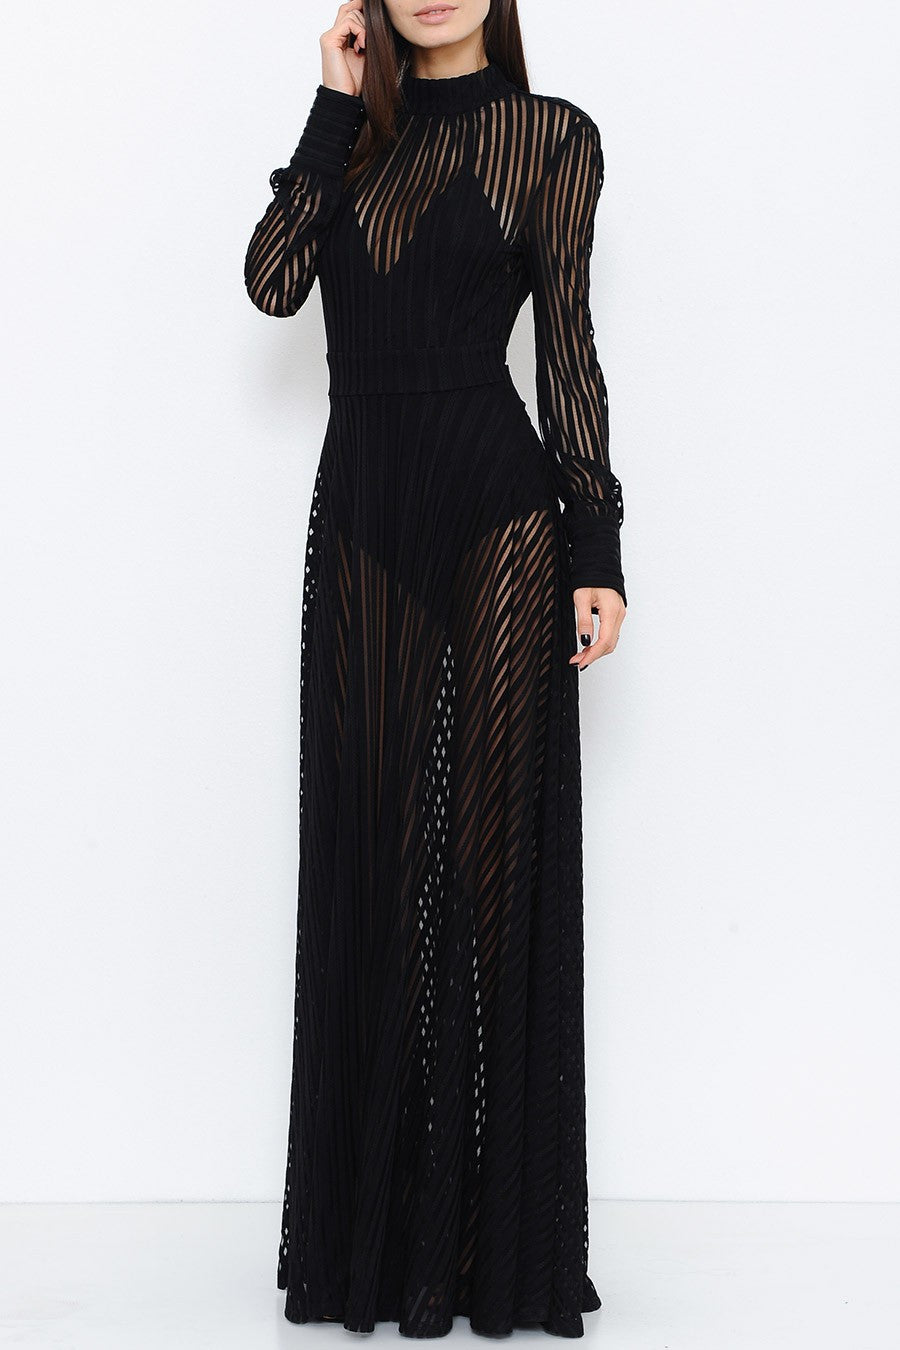 Maxwell Sheer Maxi Dress